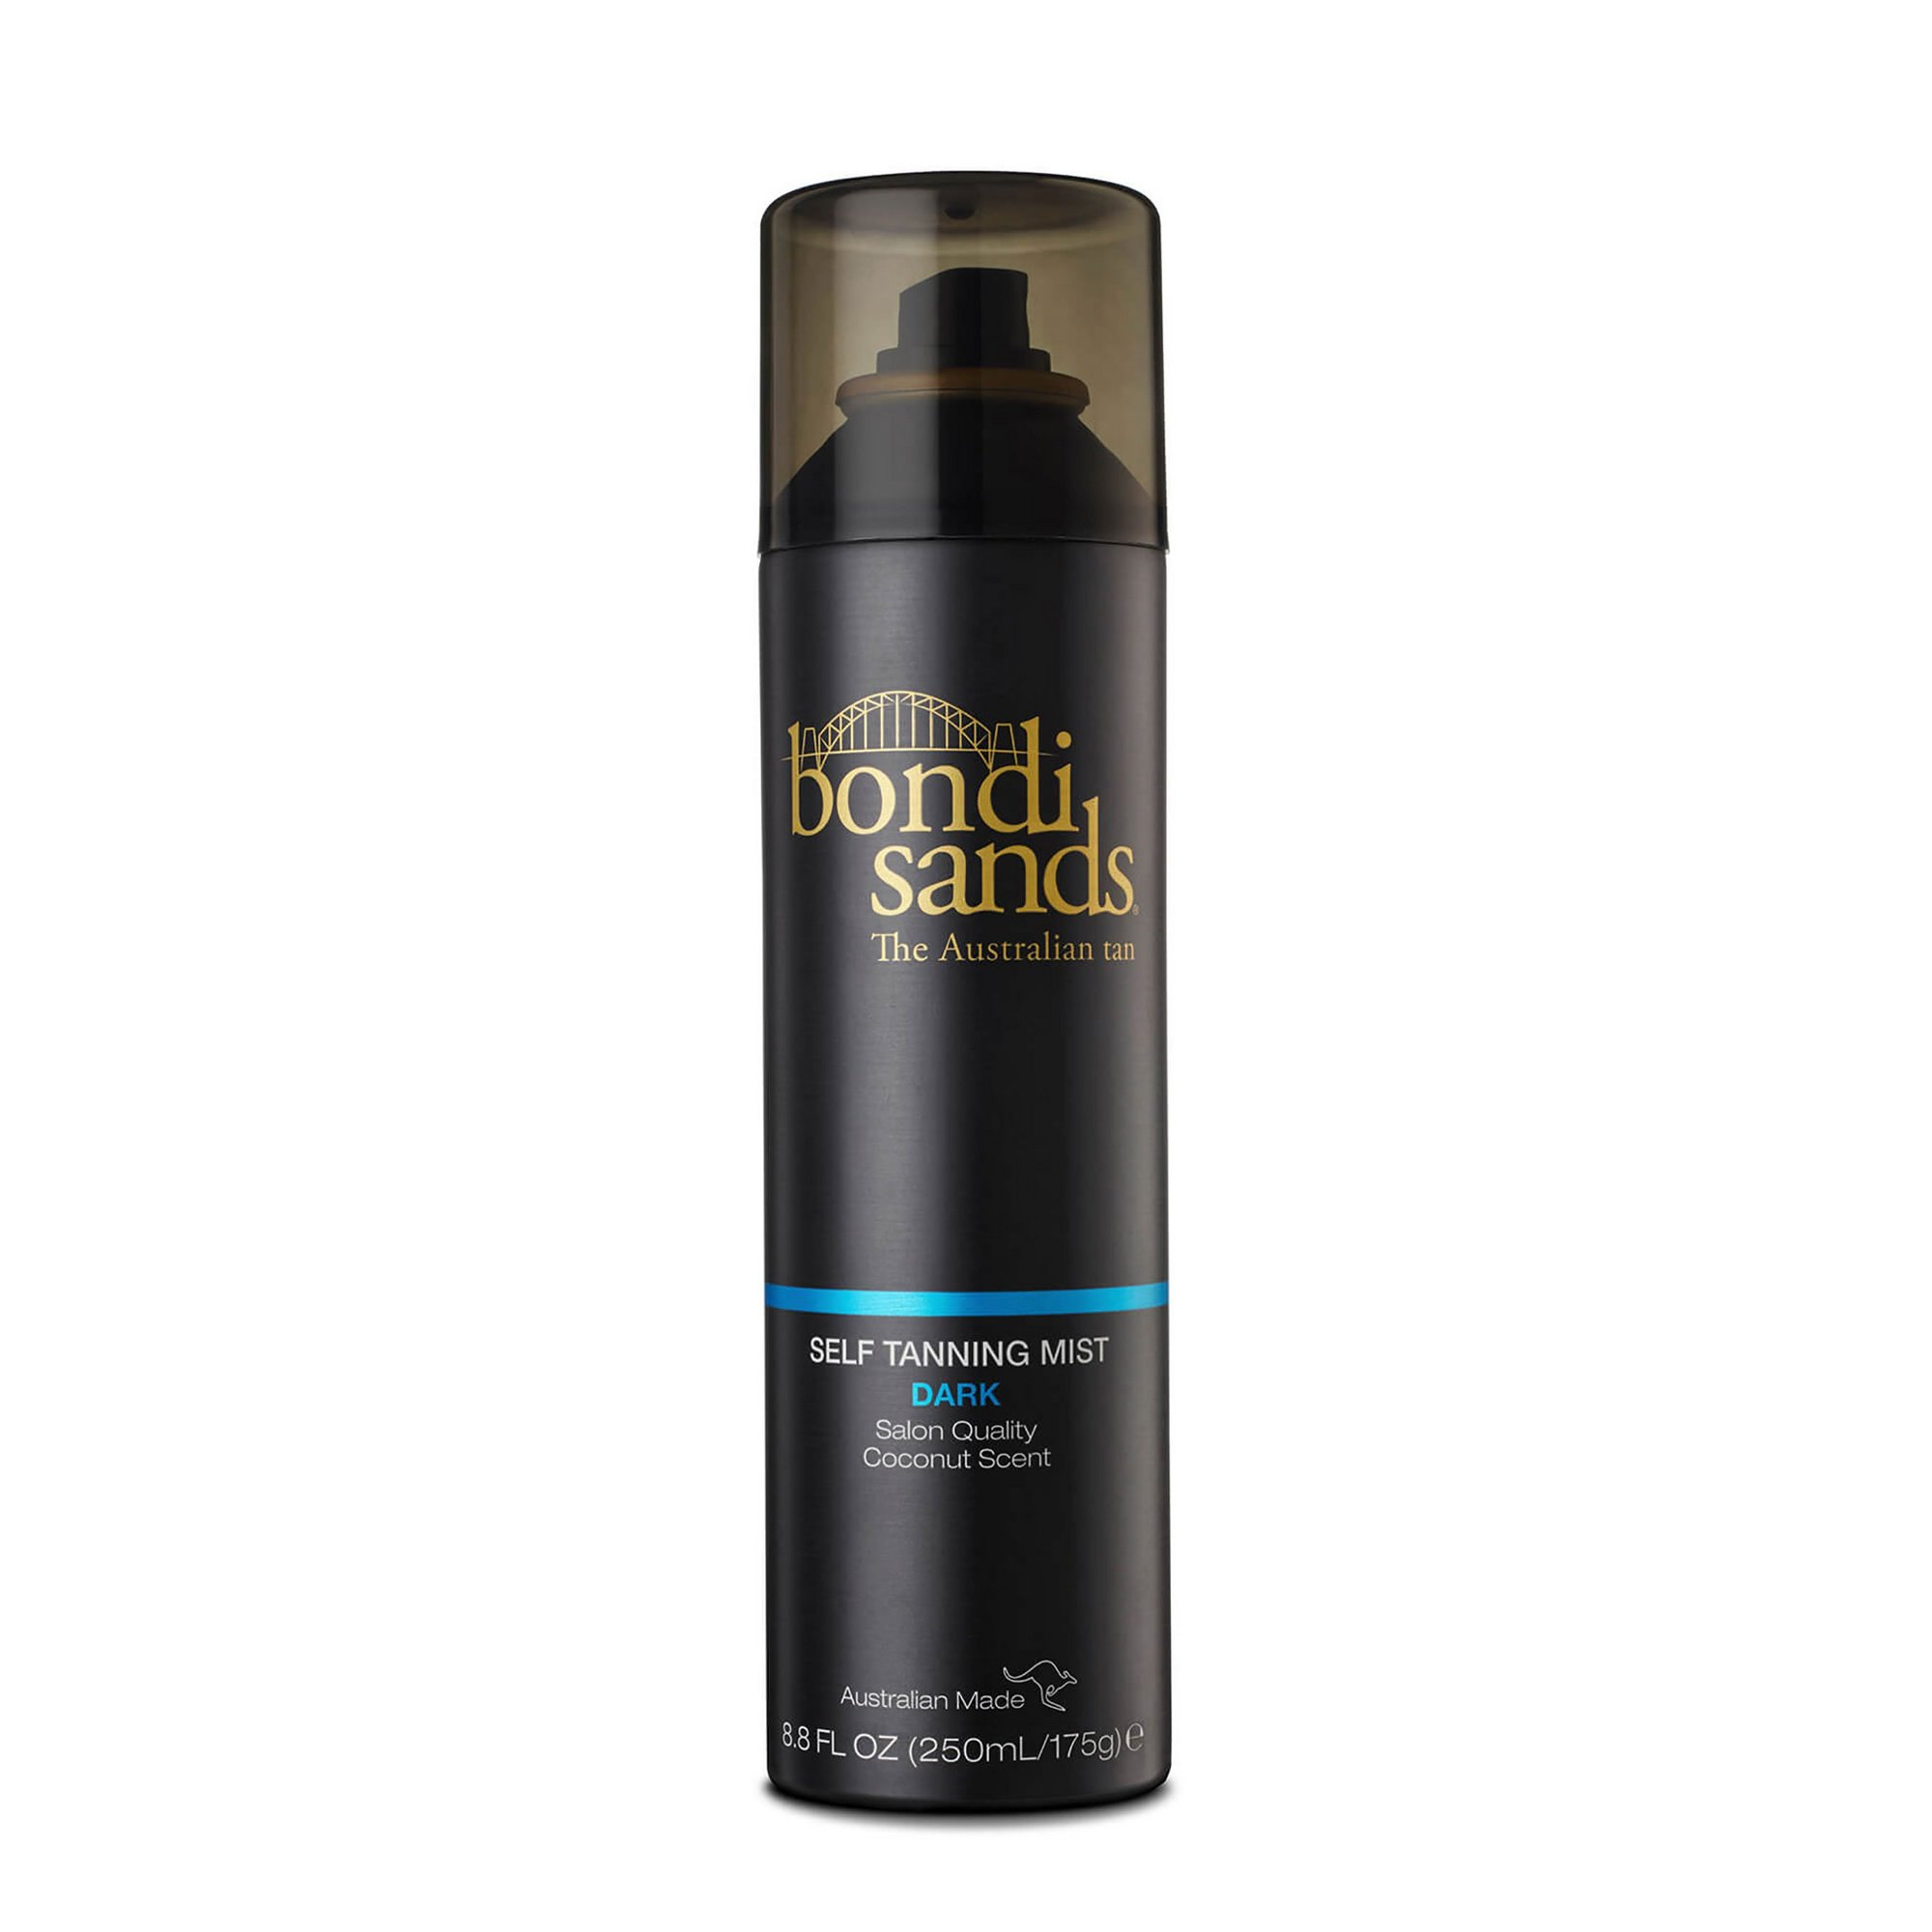 Image of Bondi Sands 250ml Self Tanning Mist in Dark